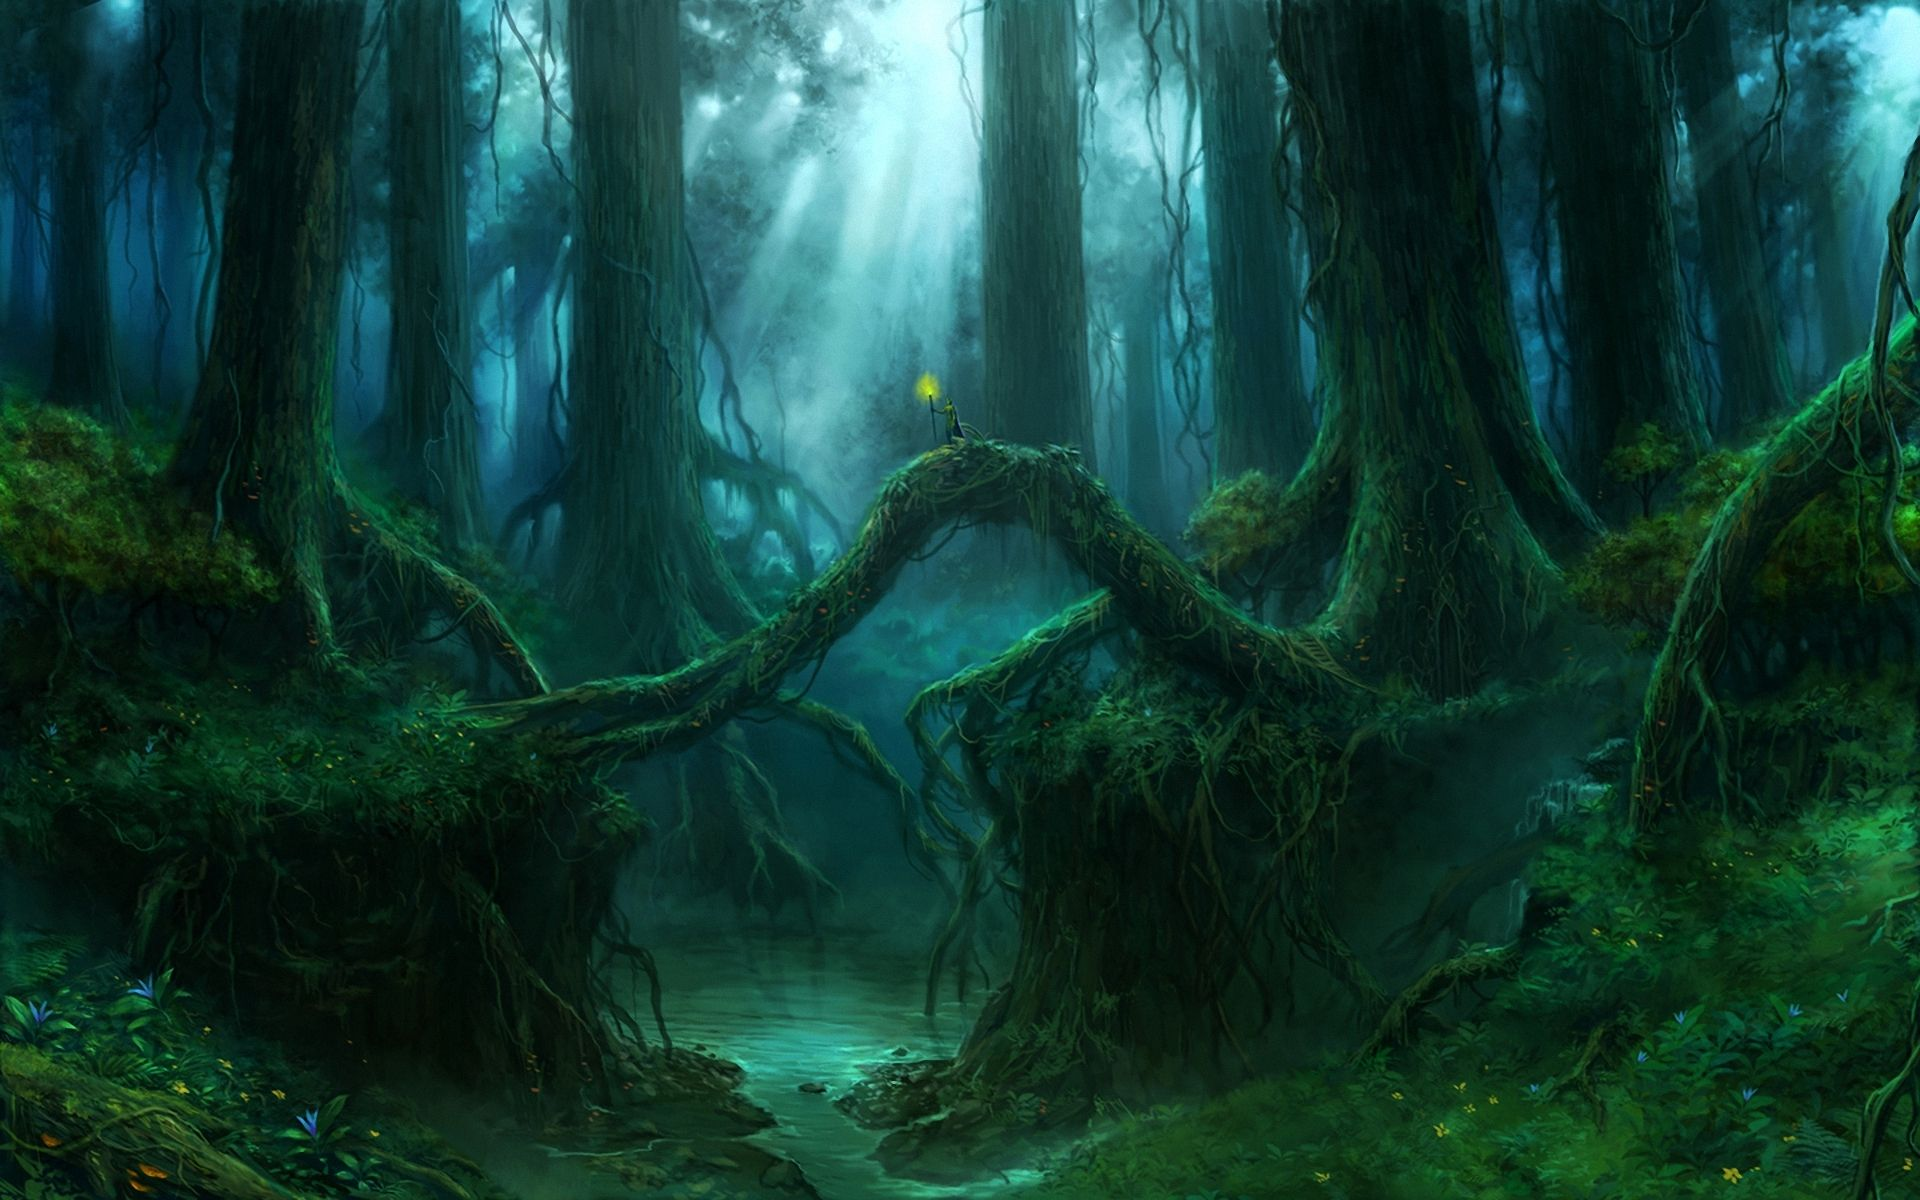 Fantasy Forest Wood Wallpaper Fantasy Forest Fantasy Landscape Magical Forest